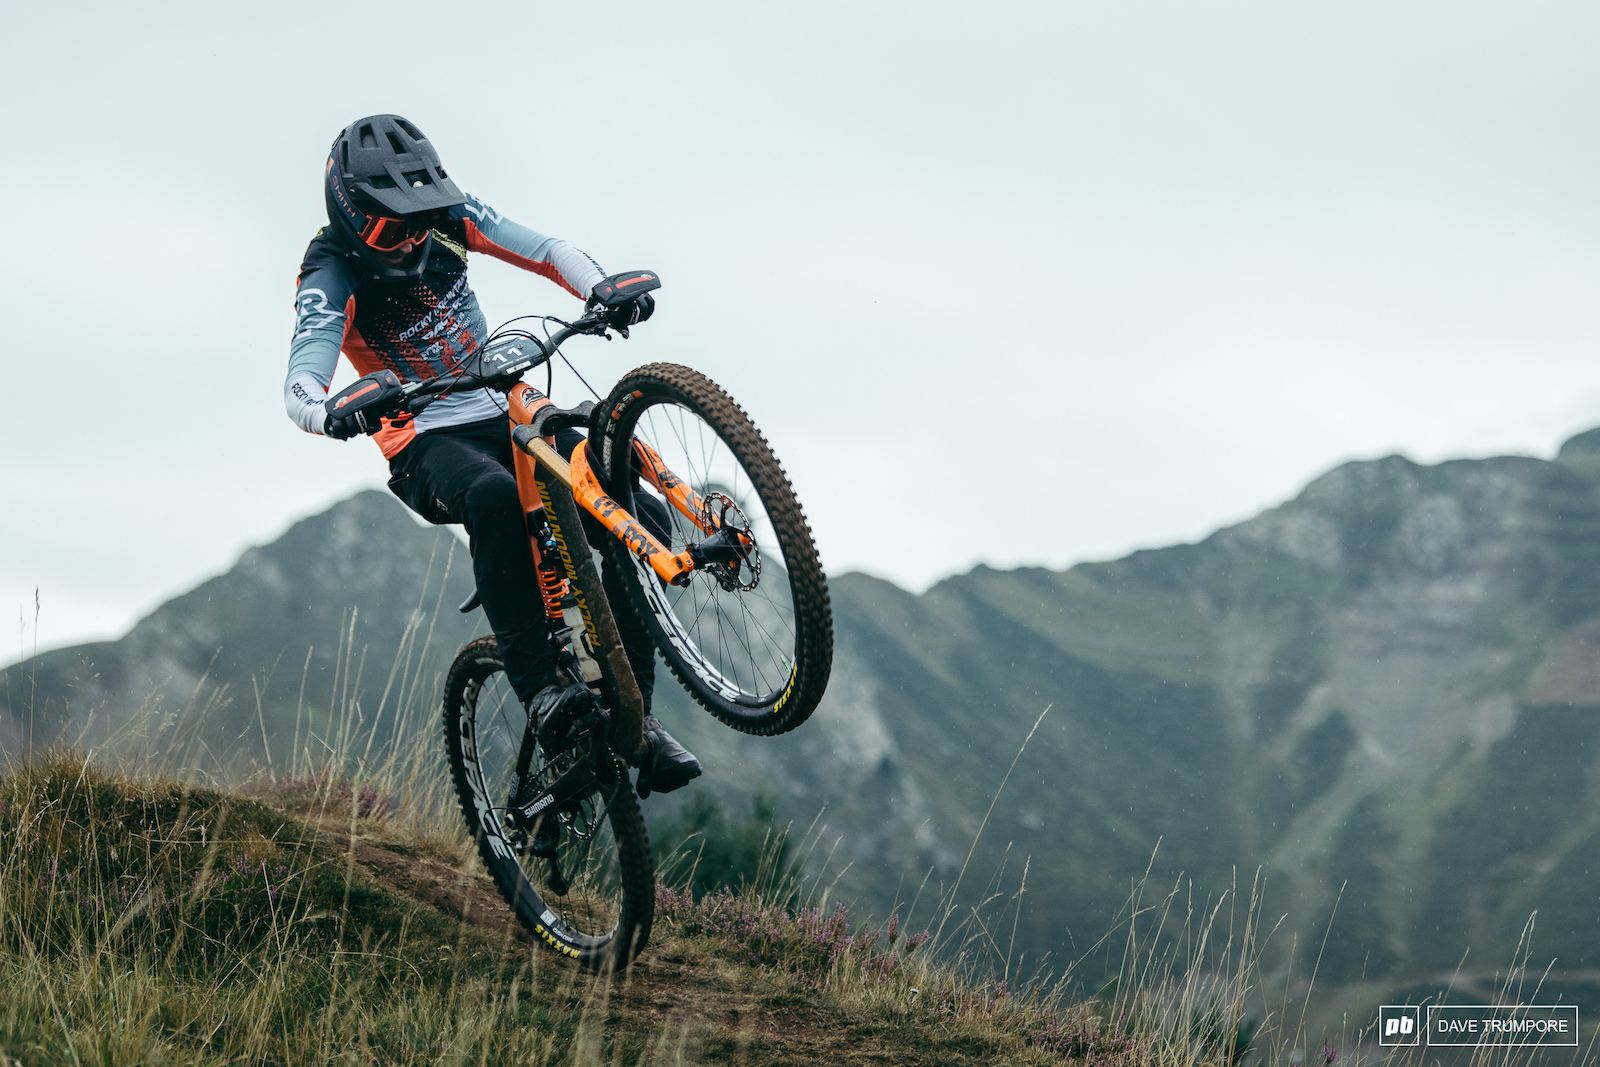 Jesse Melamed would ave liked a bit more tech to showcase his skills but would still manage a respectable 8th on the fast and open slopes in Loudenvielle